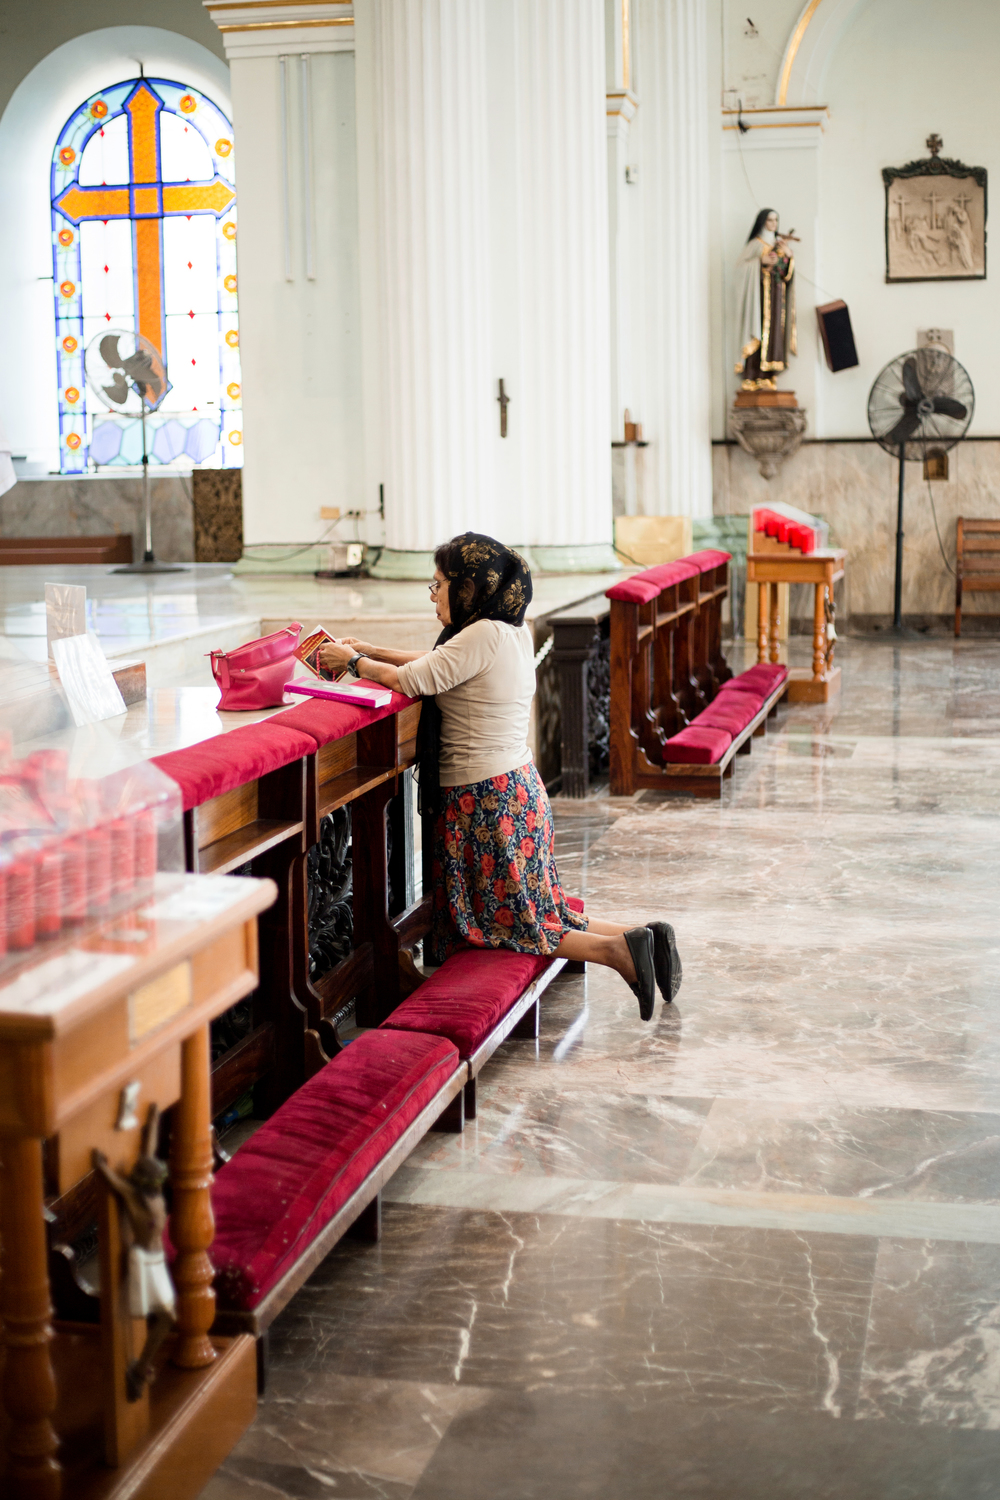 Woman Praying in a Mexican Cathedral